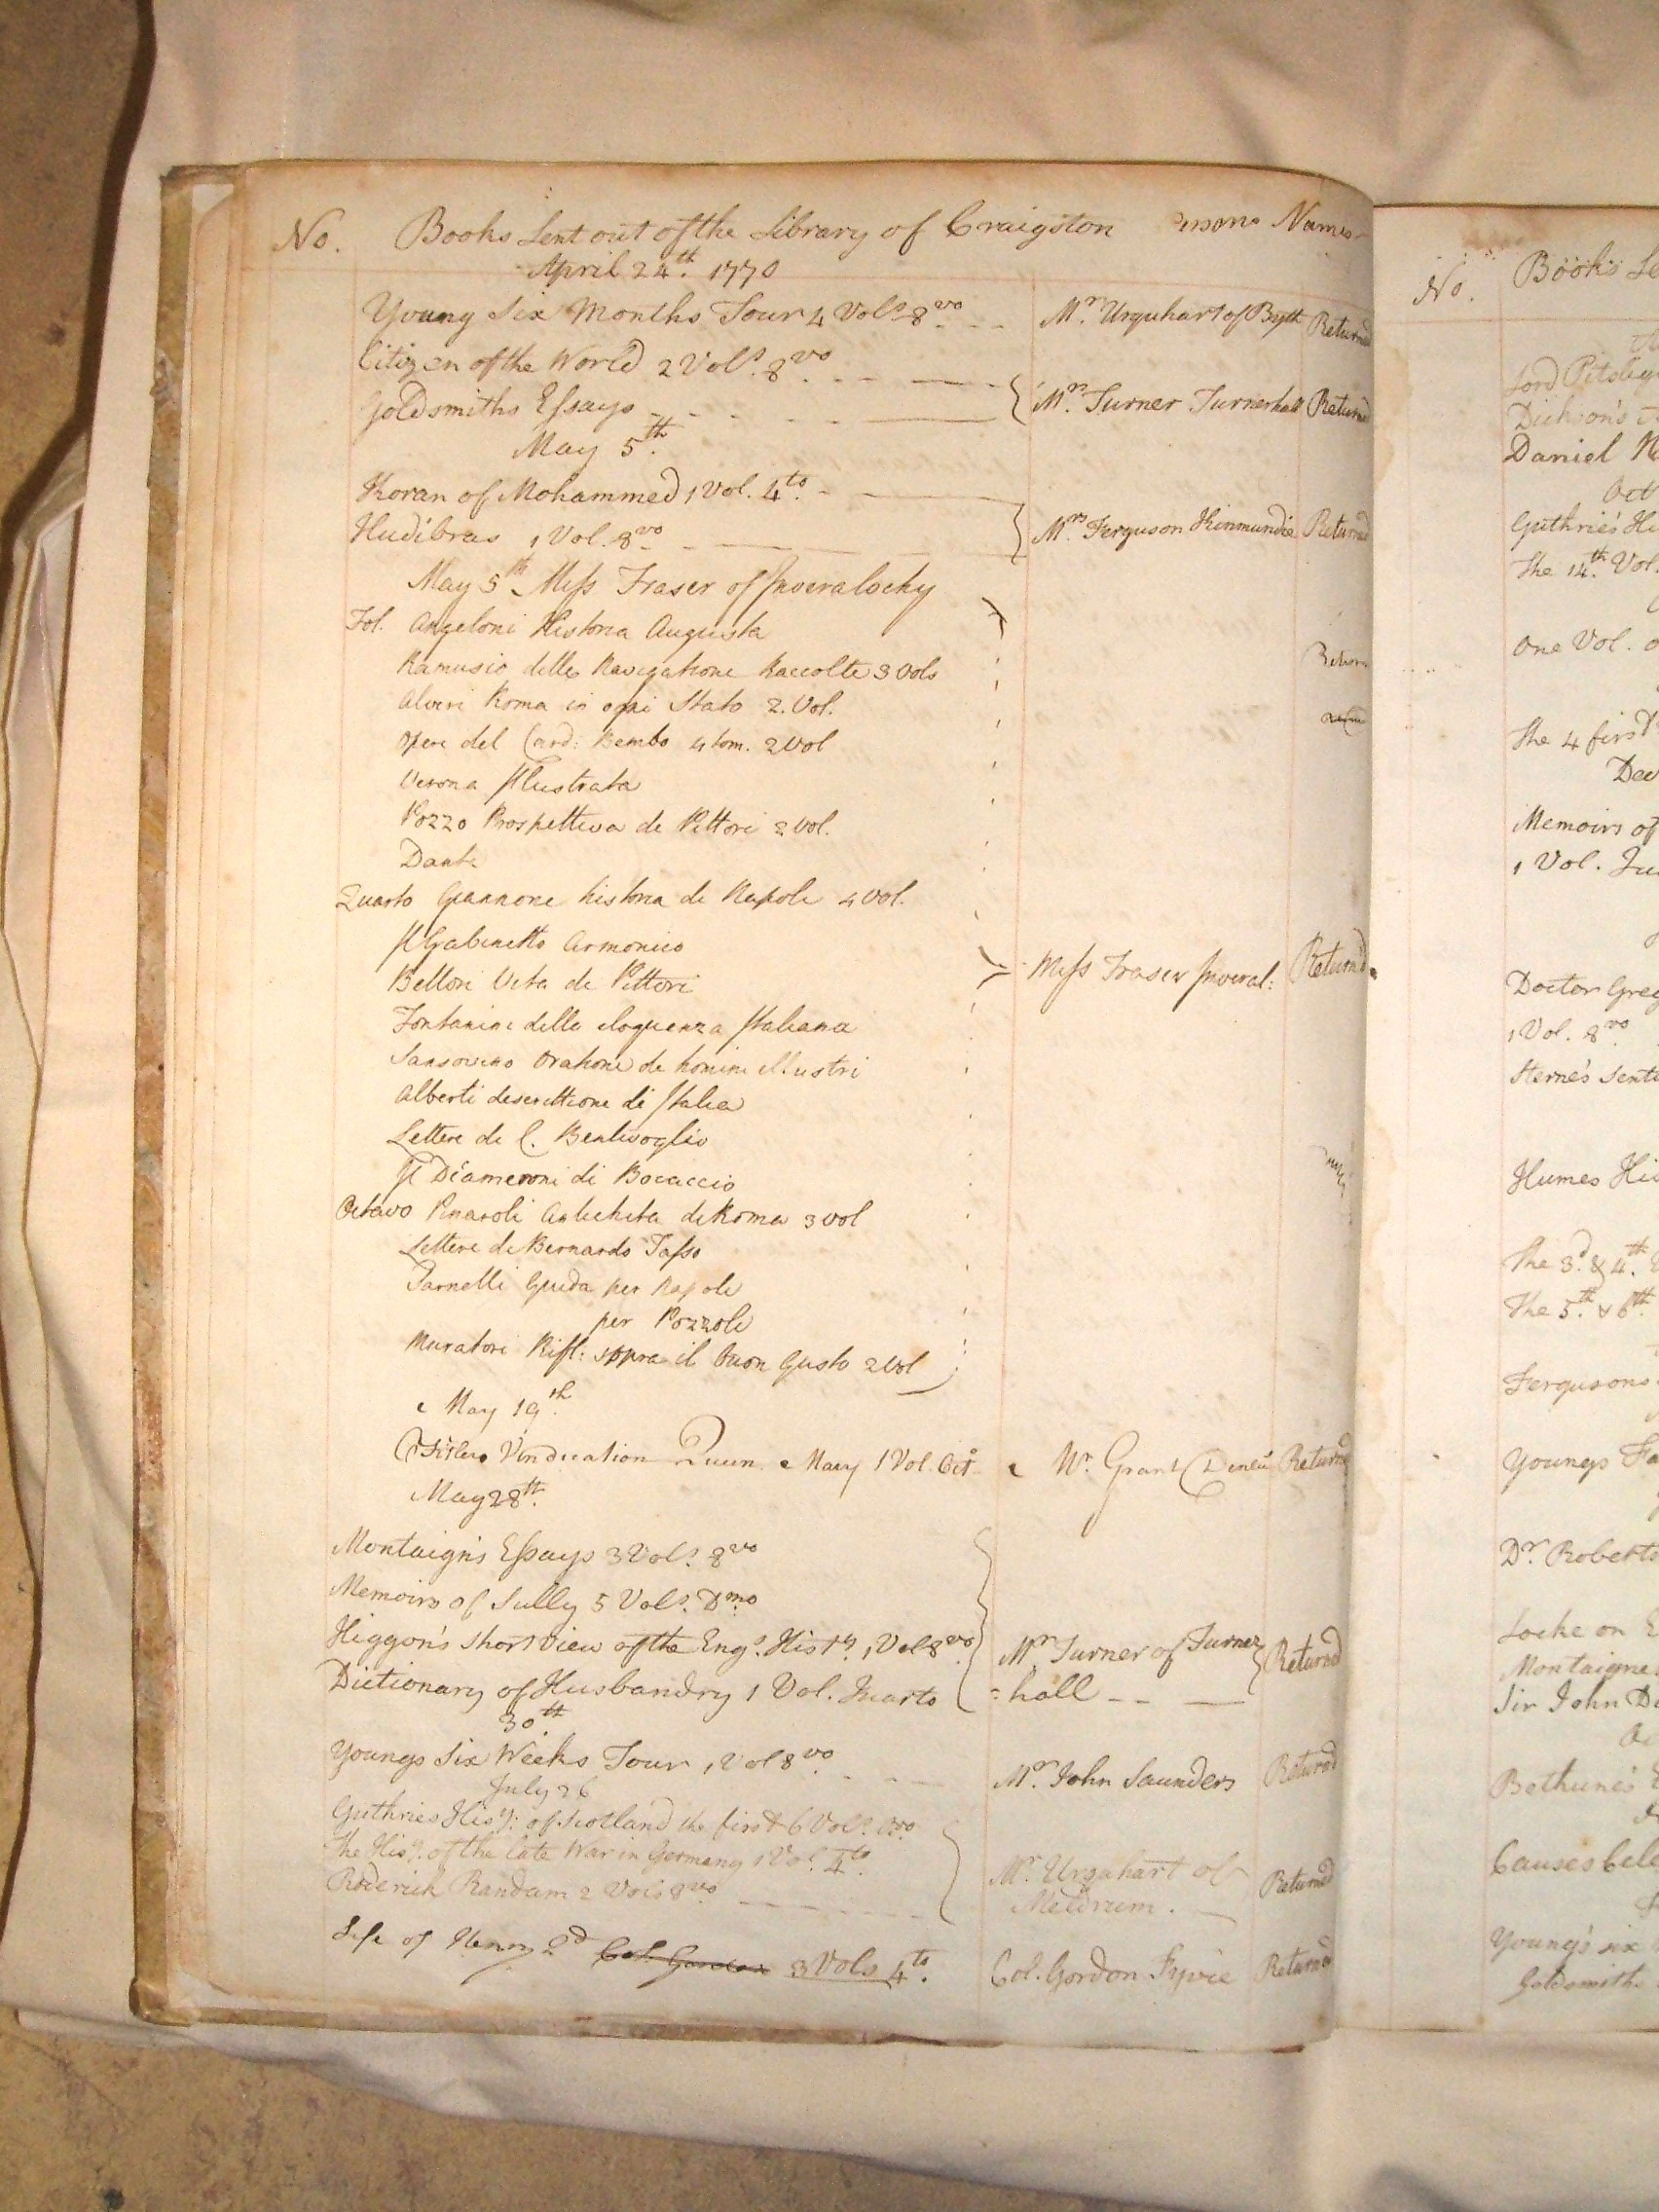 sample page from Craigston Castle borrowing register